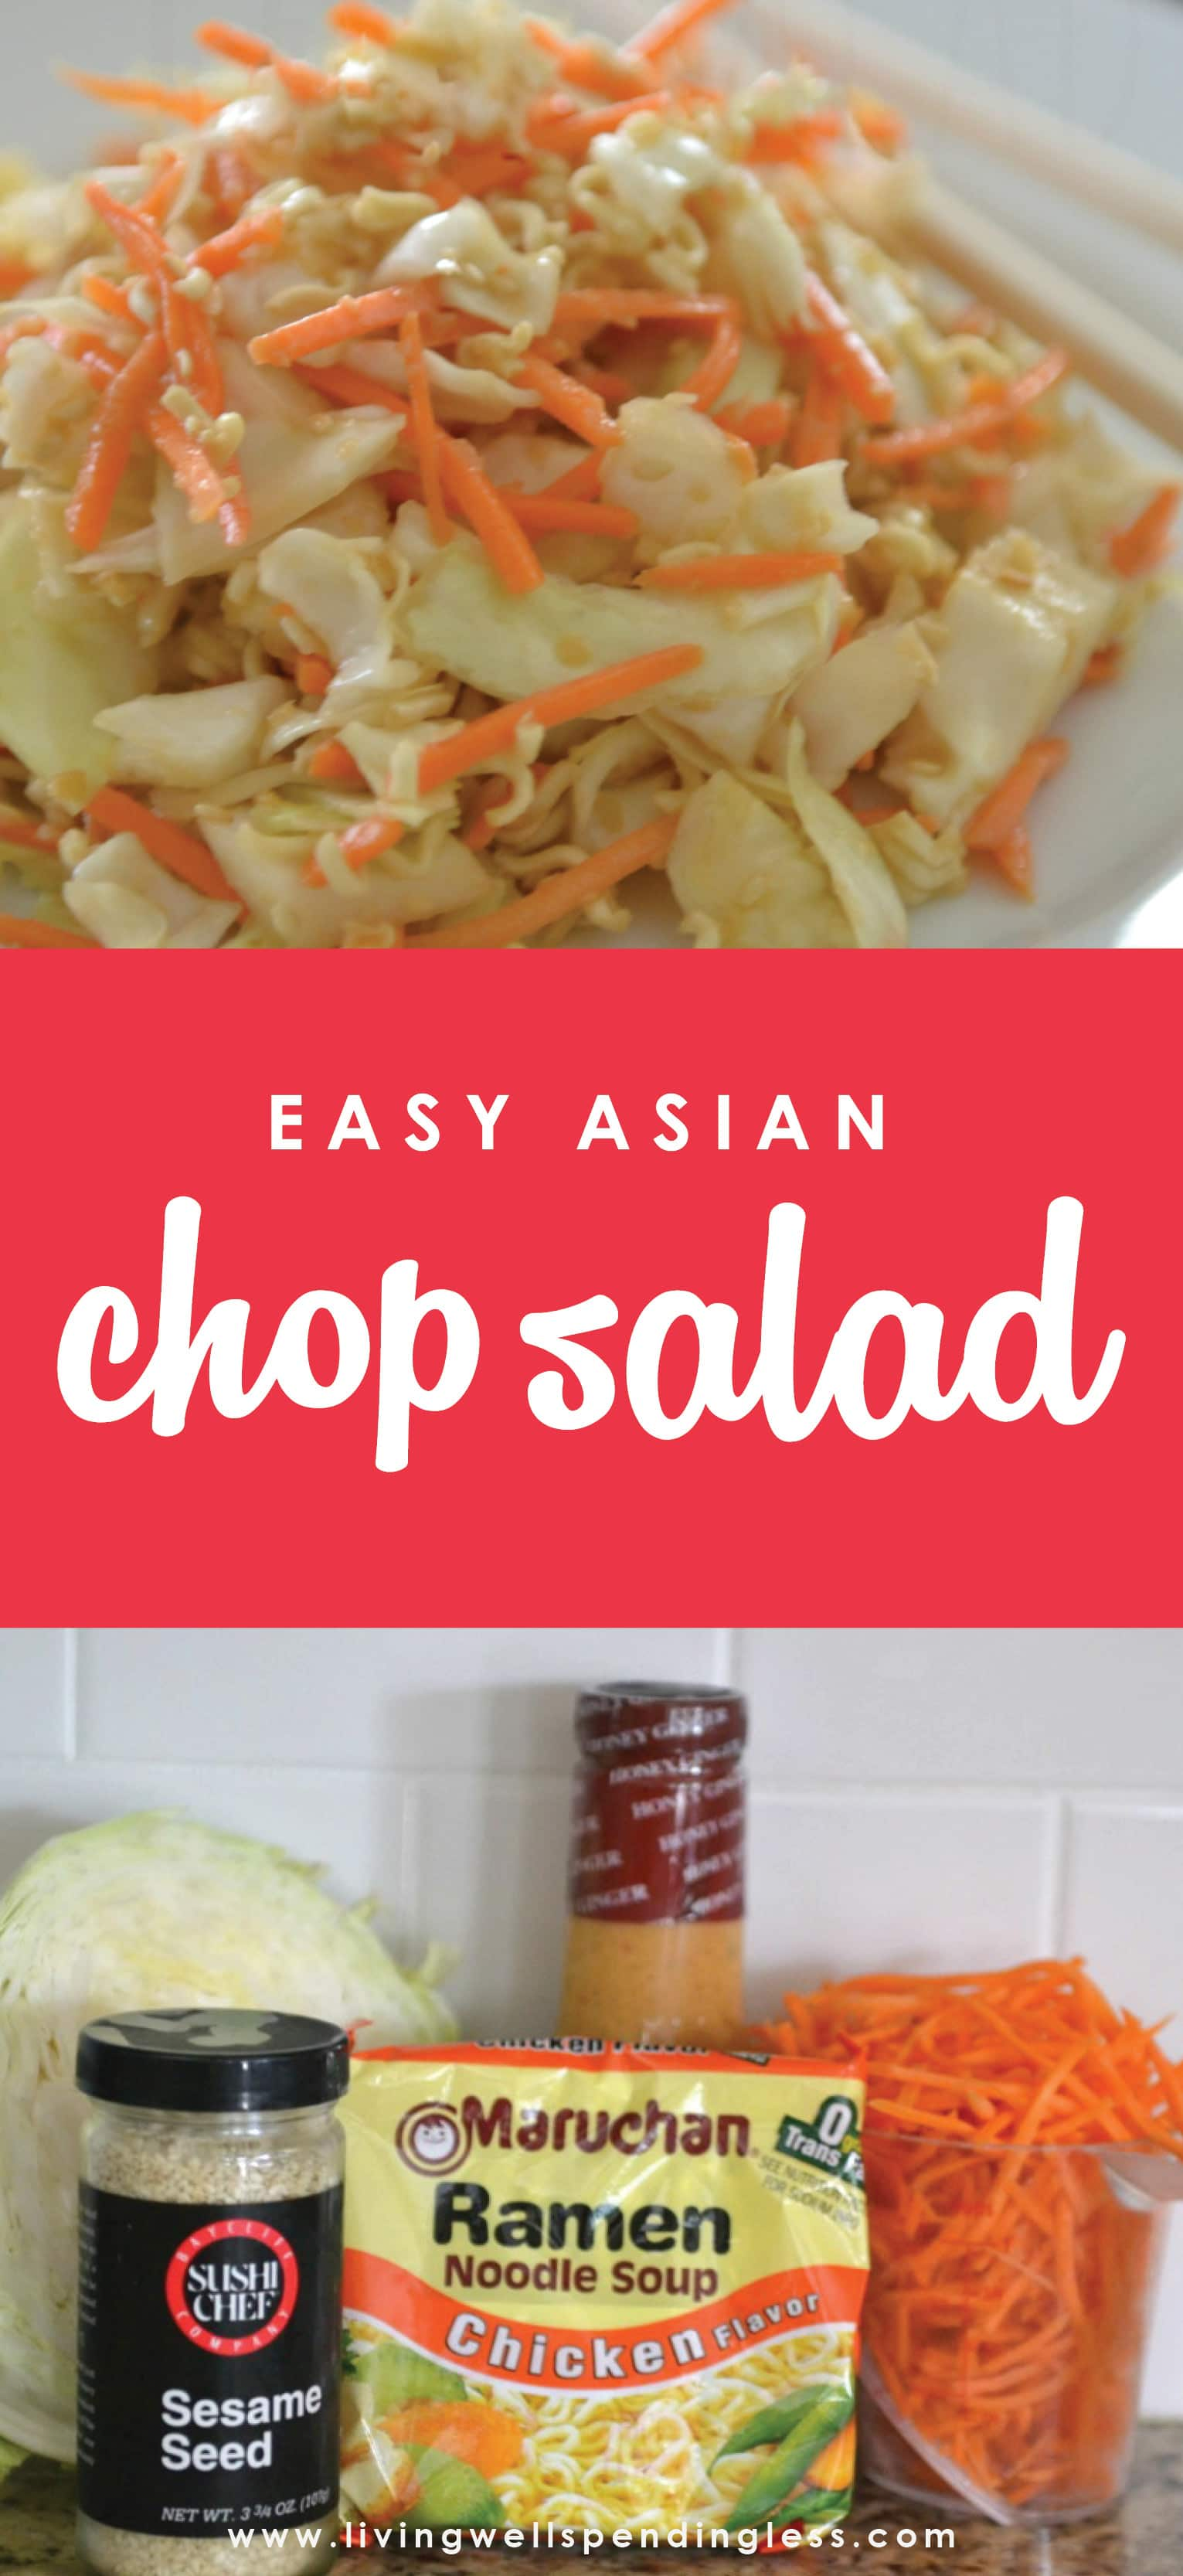 Need a quick & simple meal idea for hot summer nights? This Easy Asian Chop Salad has a ton of flavor, crunch and comes together with only 5 ingredients!